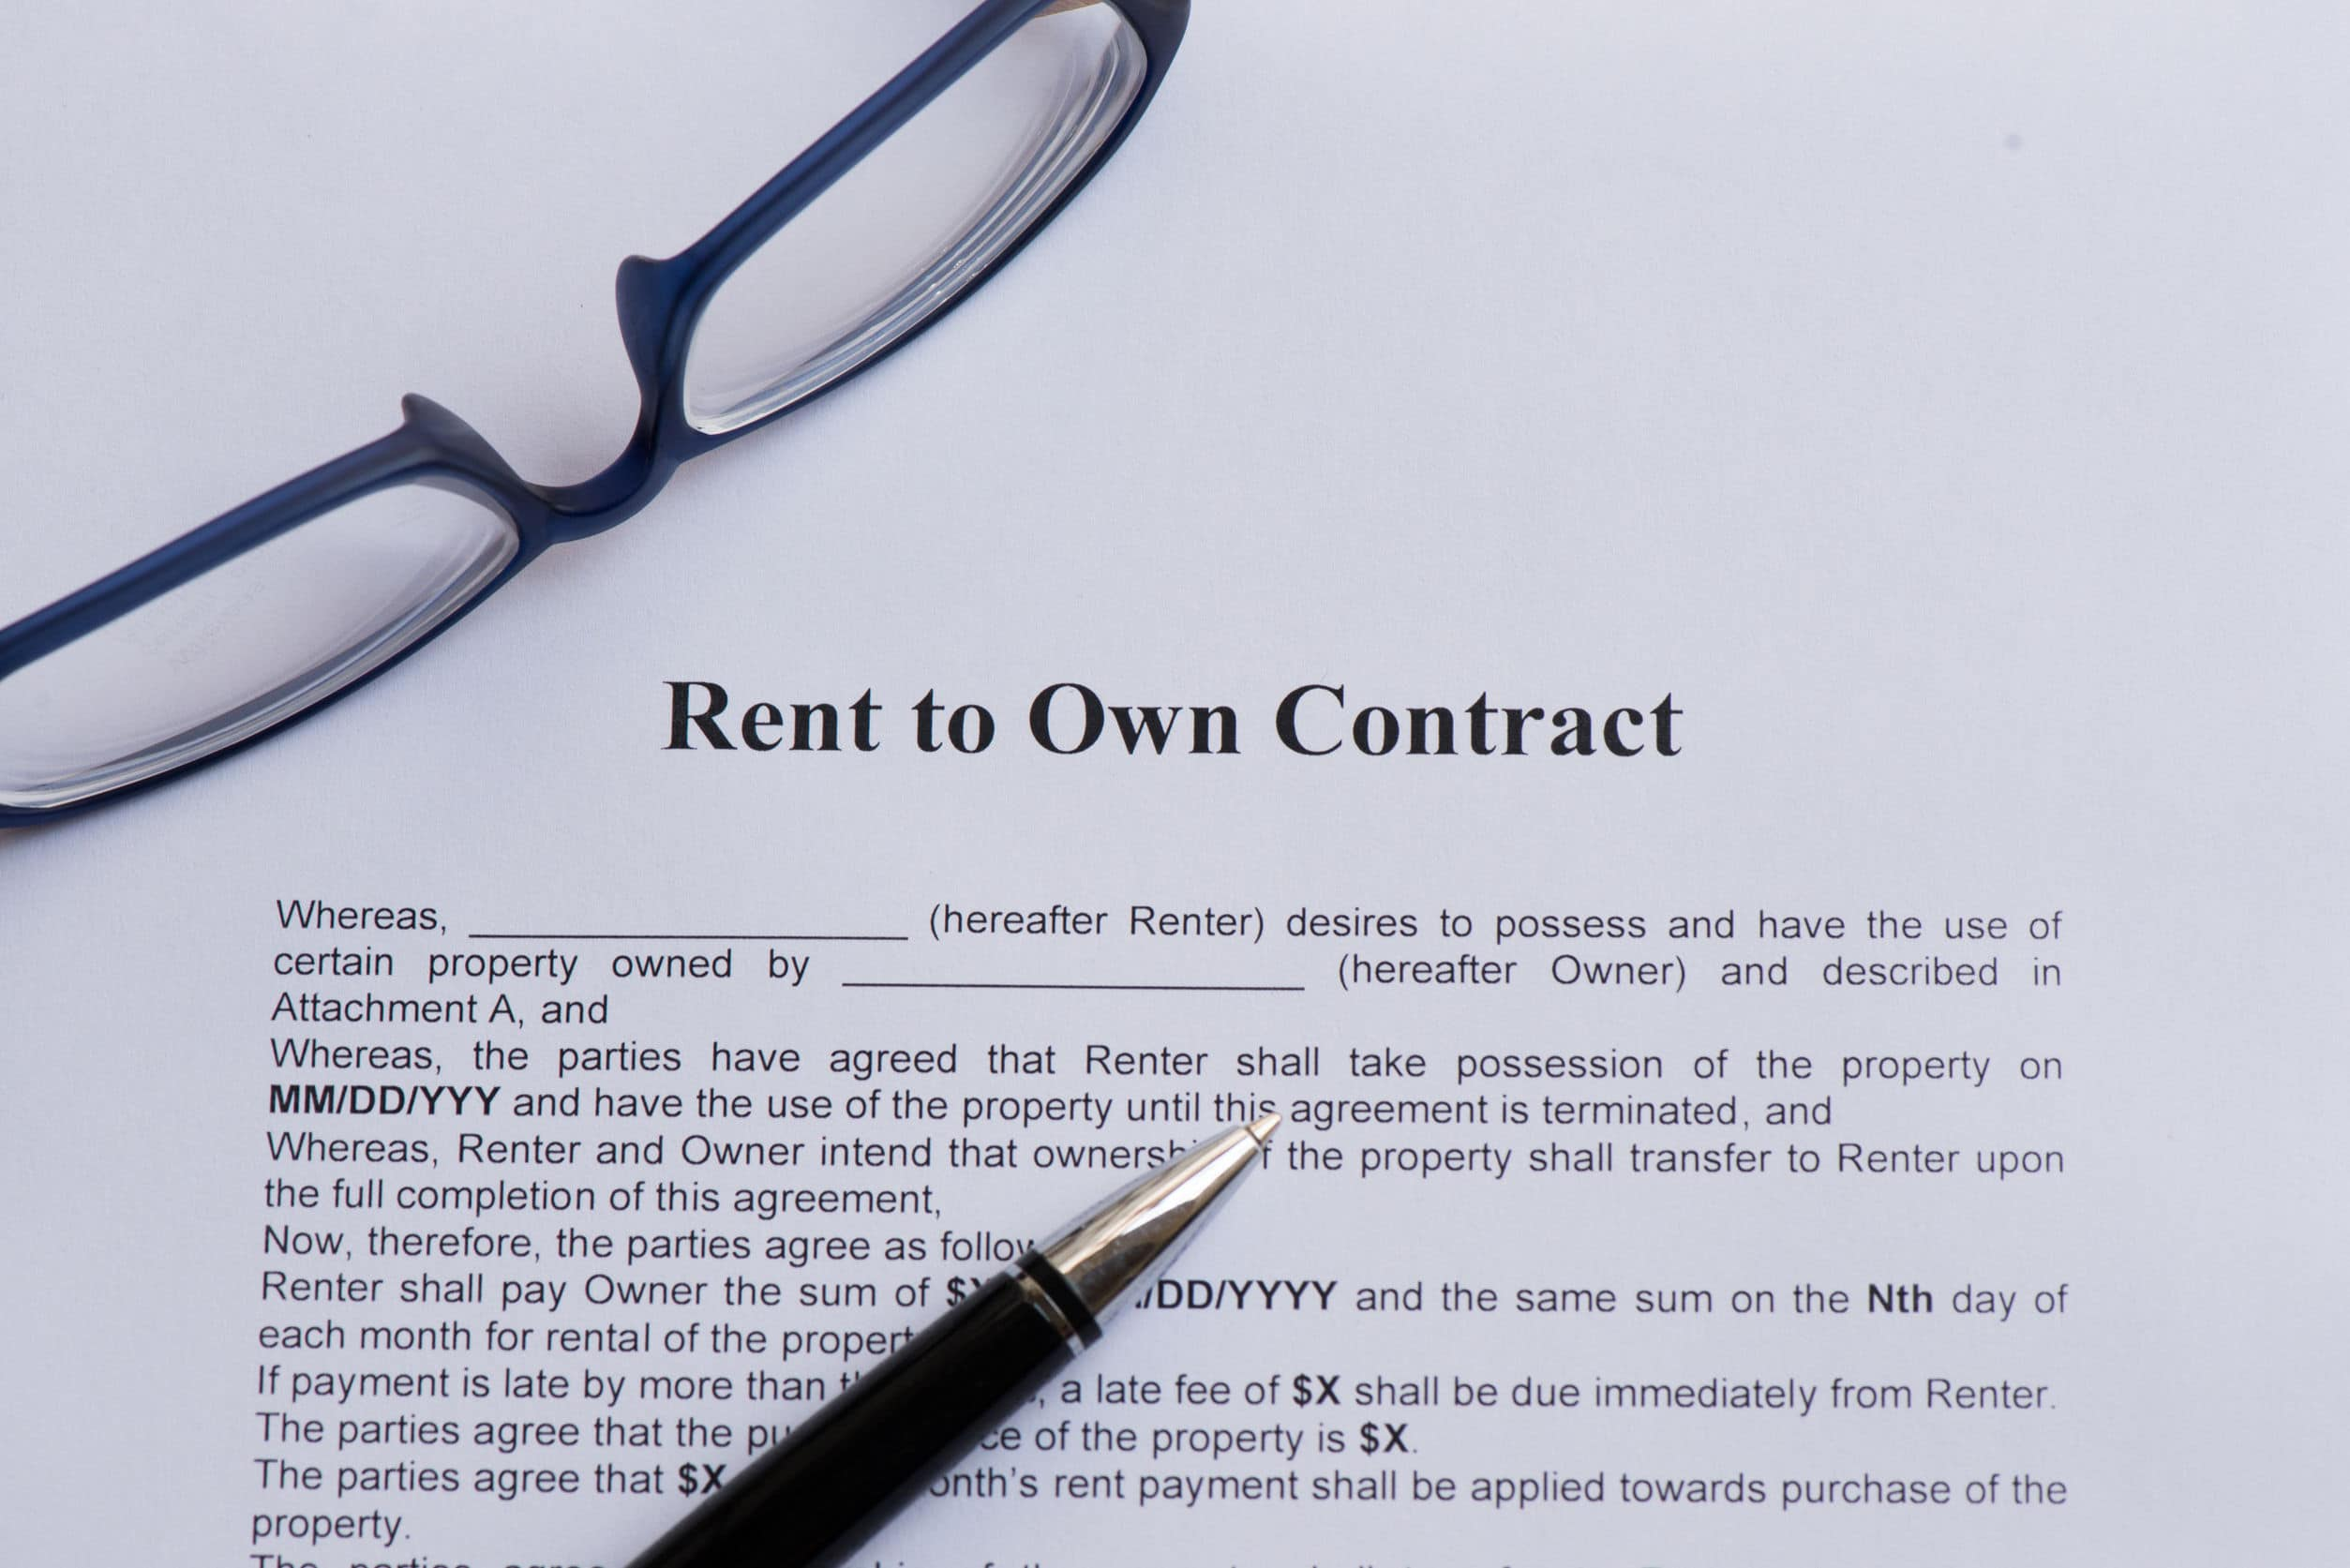 Texas Rent-to-Own Service Threatening to File Charges? What to Know